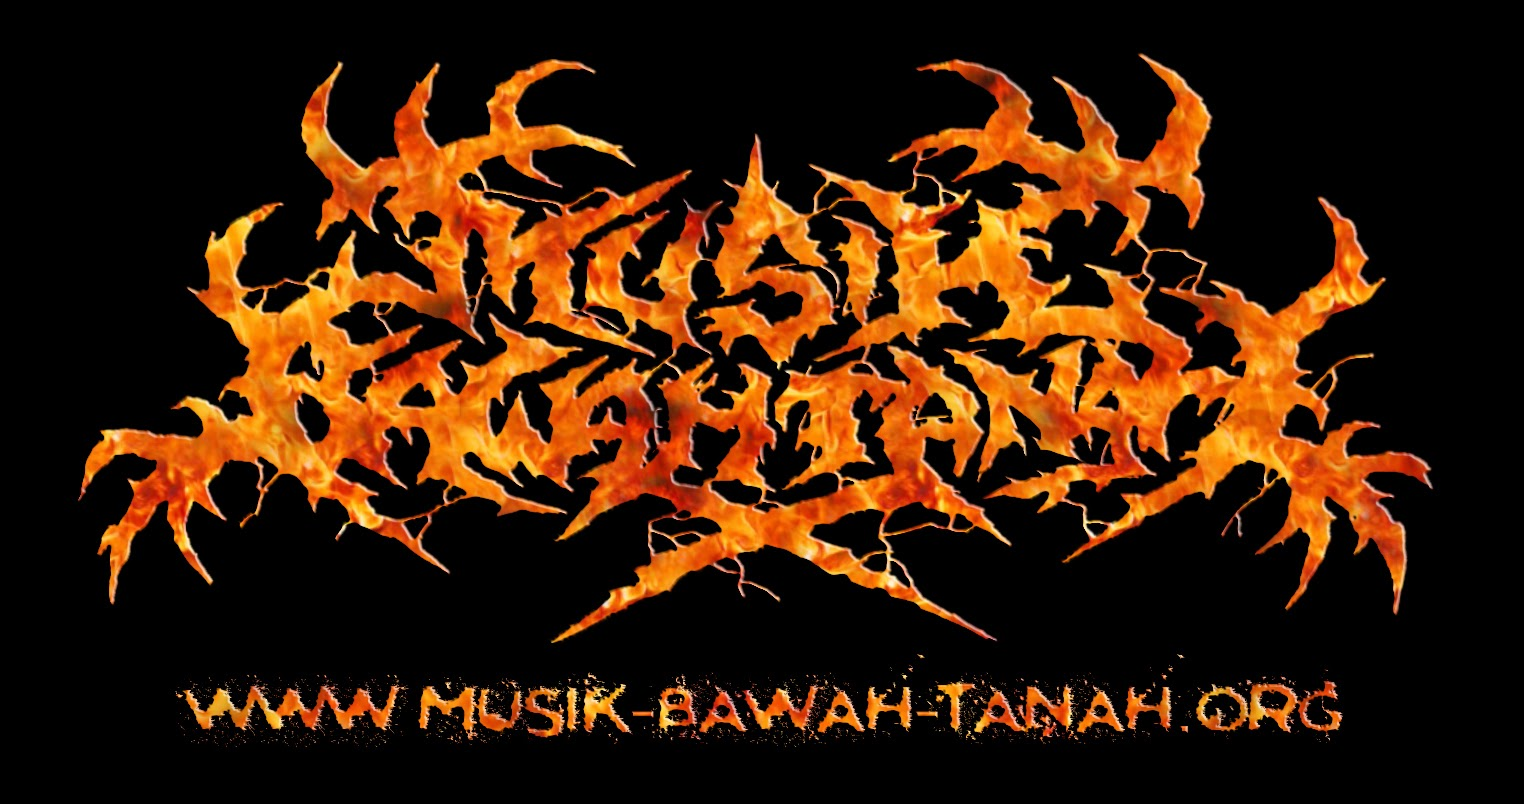 Musik Bawah Tanah | Black Metal | Grindcore | Screamo | Death Metal | Punk Rock | Hardcore | Metalcore | Gothic Metal | Deathcore | Artwork